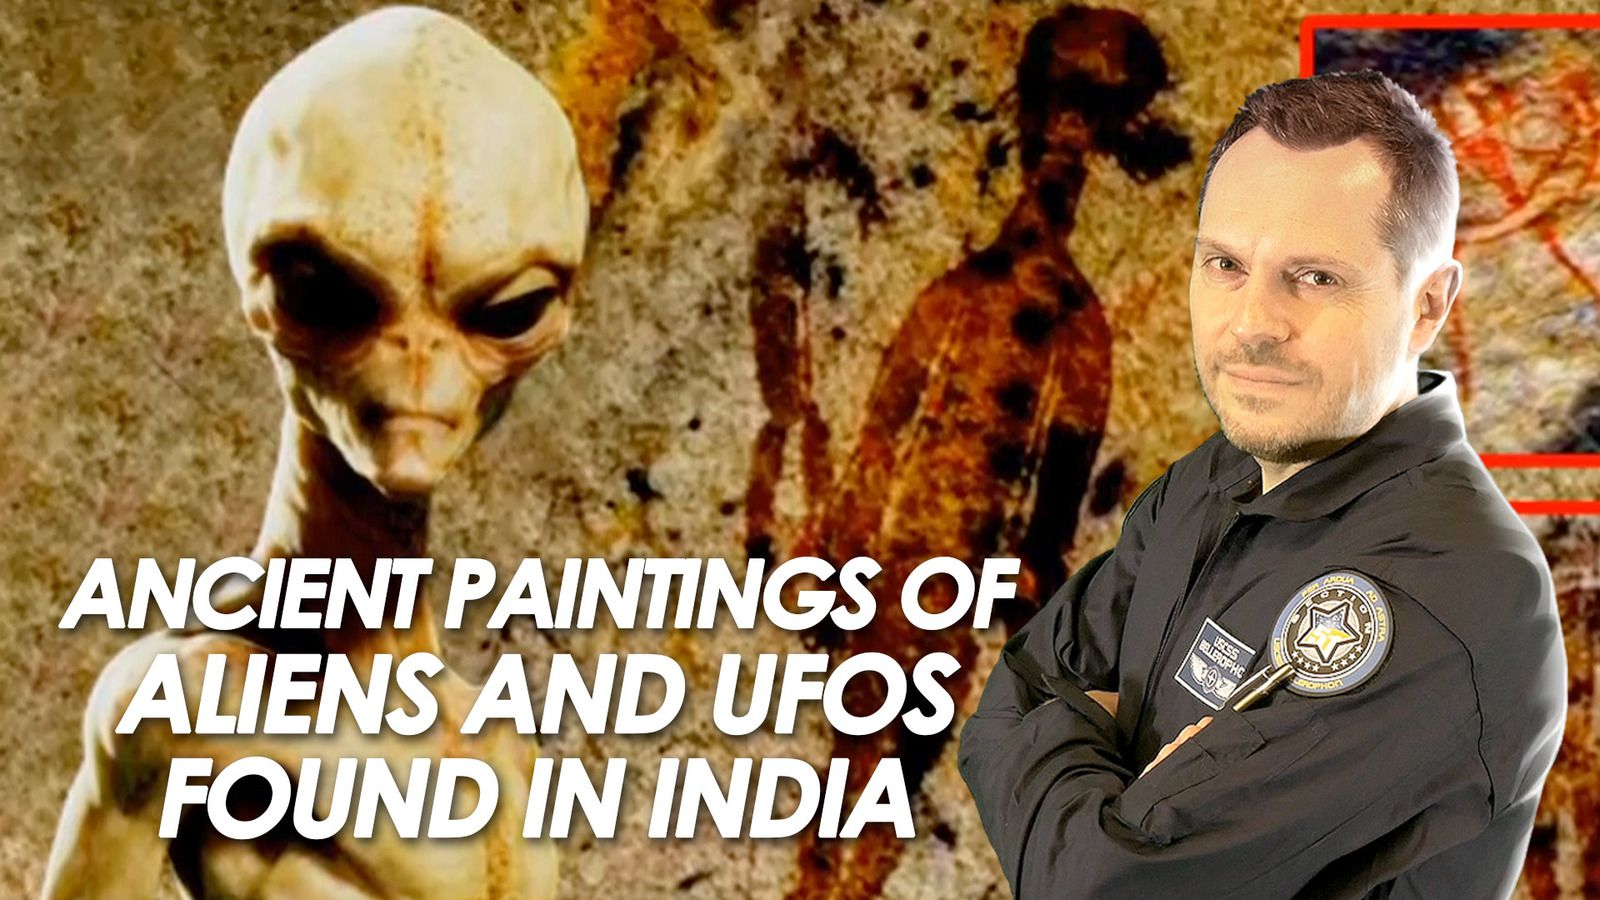 👽 10,000 Year Old Painting with Extraterrestrial Beings and UFOs Found in India